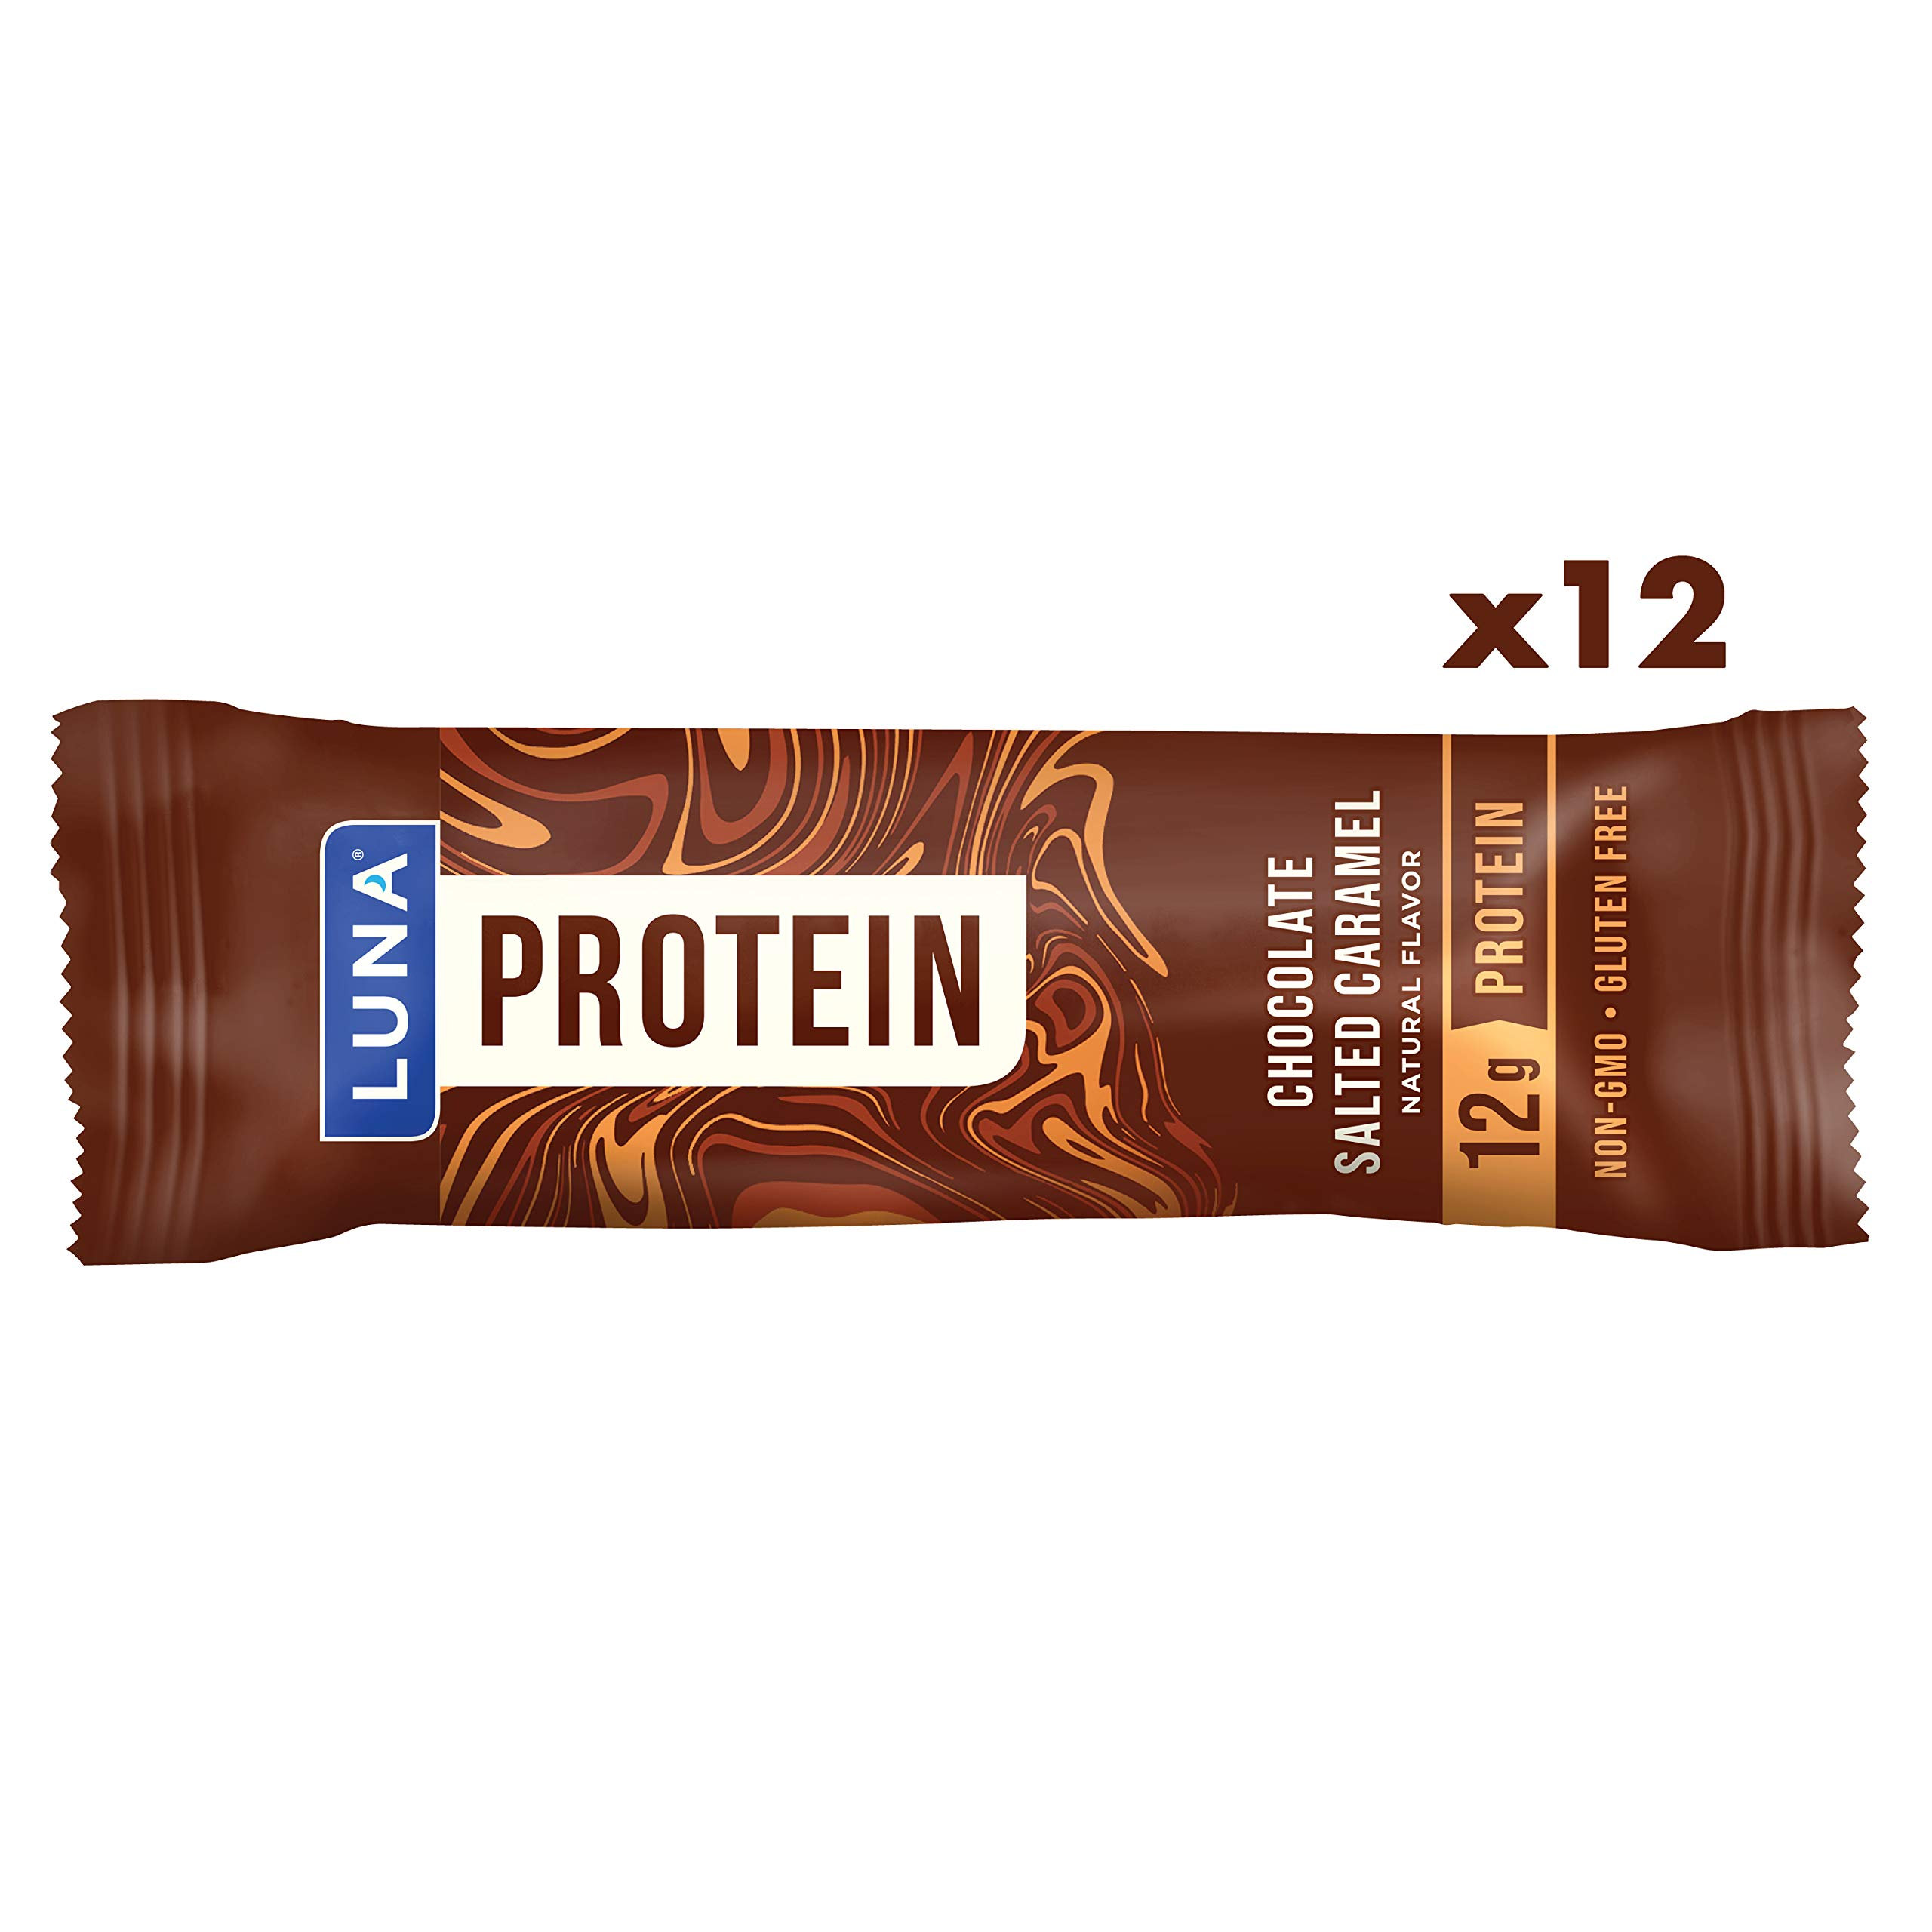 Luna Protein - Gluten Free Protein Bars - Chocolate Salted Caramel Flavor - (1.59 Ounce Snack Bars, 12 Count) by Clif Bar